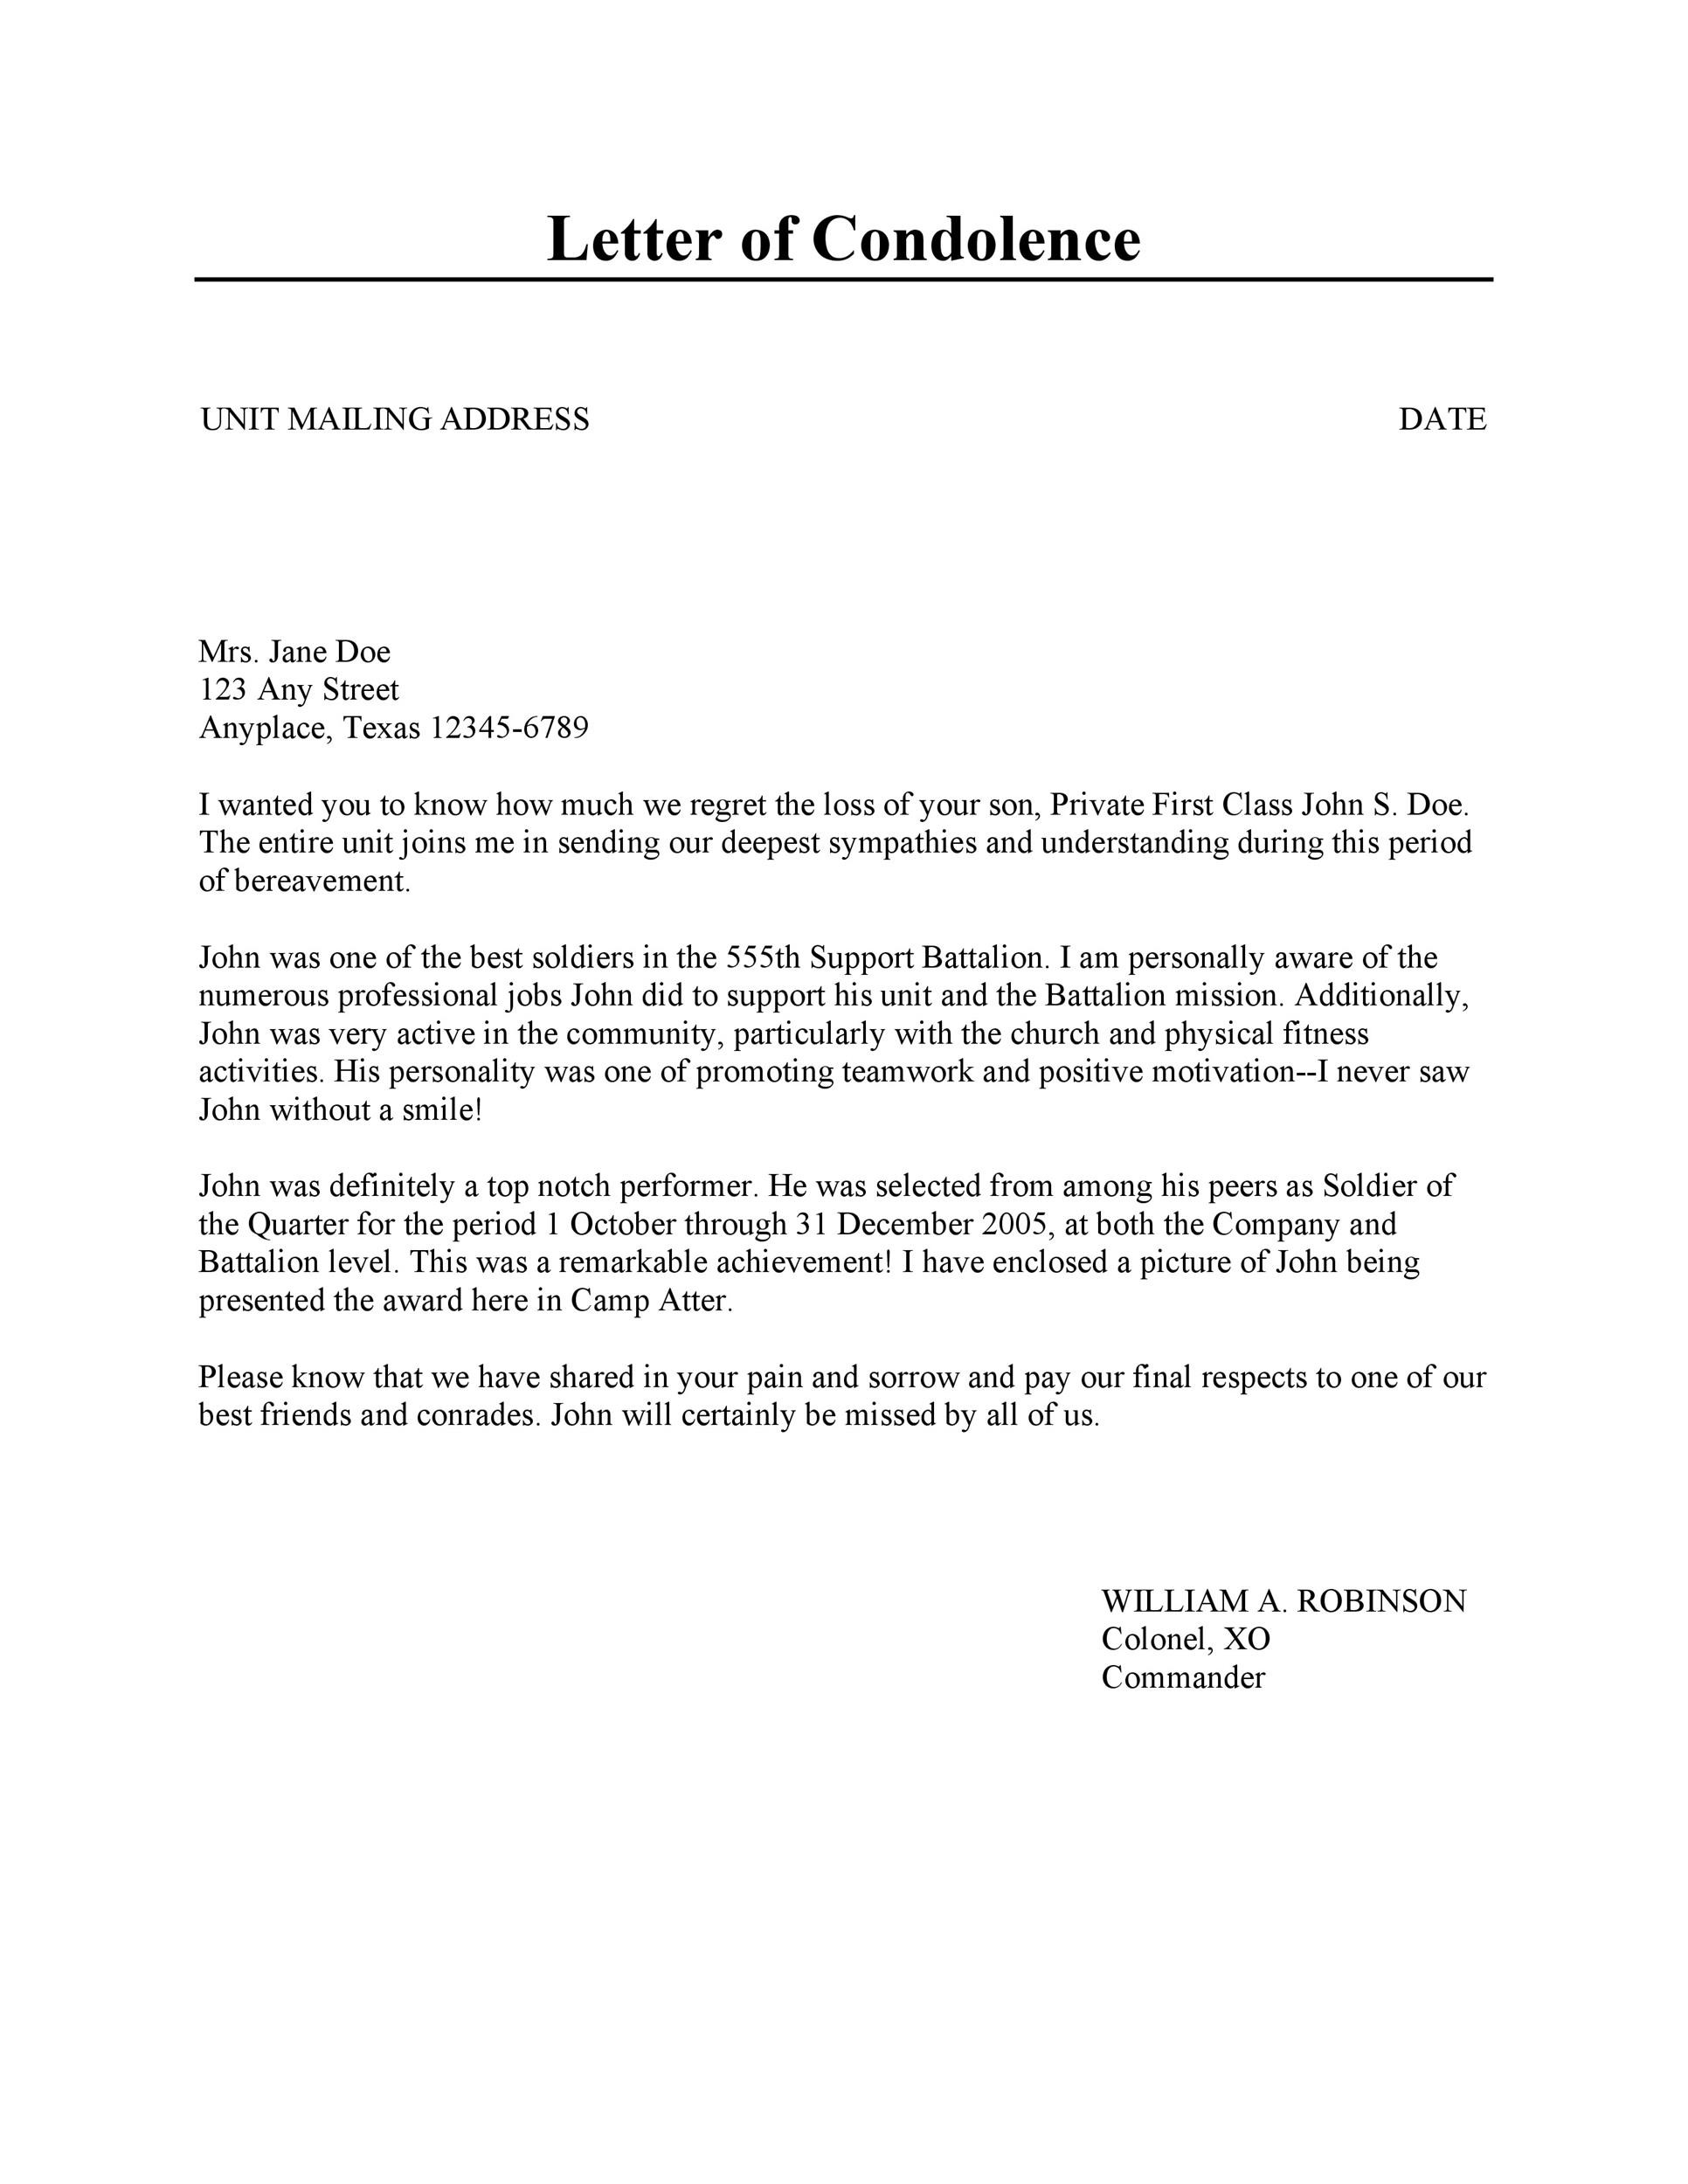 41 Condolence & Sympathy Letter Samples - Template Lab